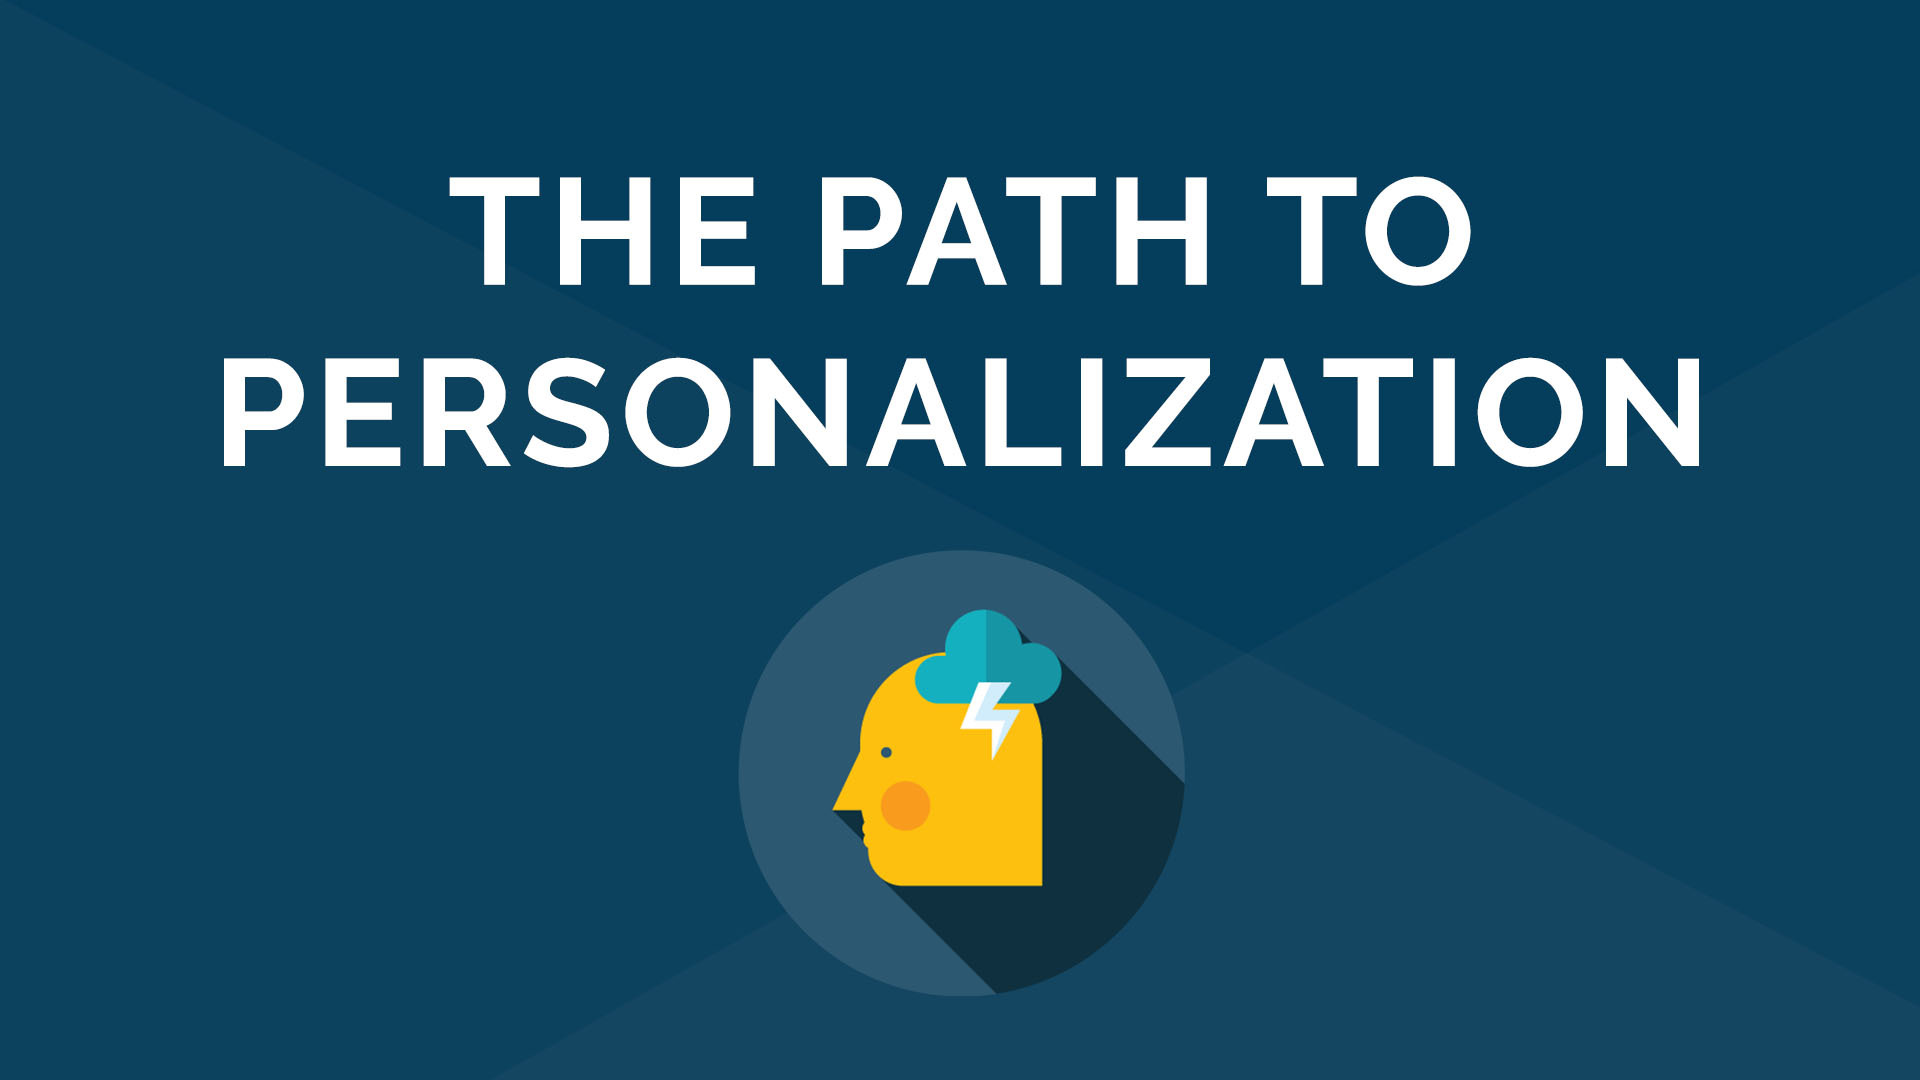 The Path to Personalization: 12 Ways to Engage Your Prospects